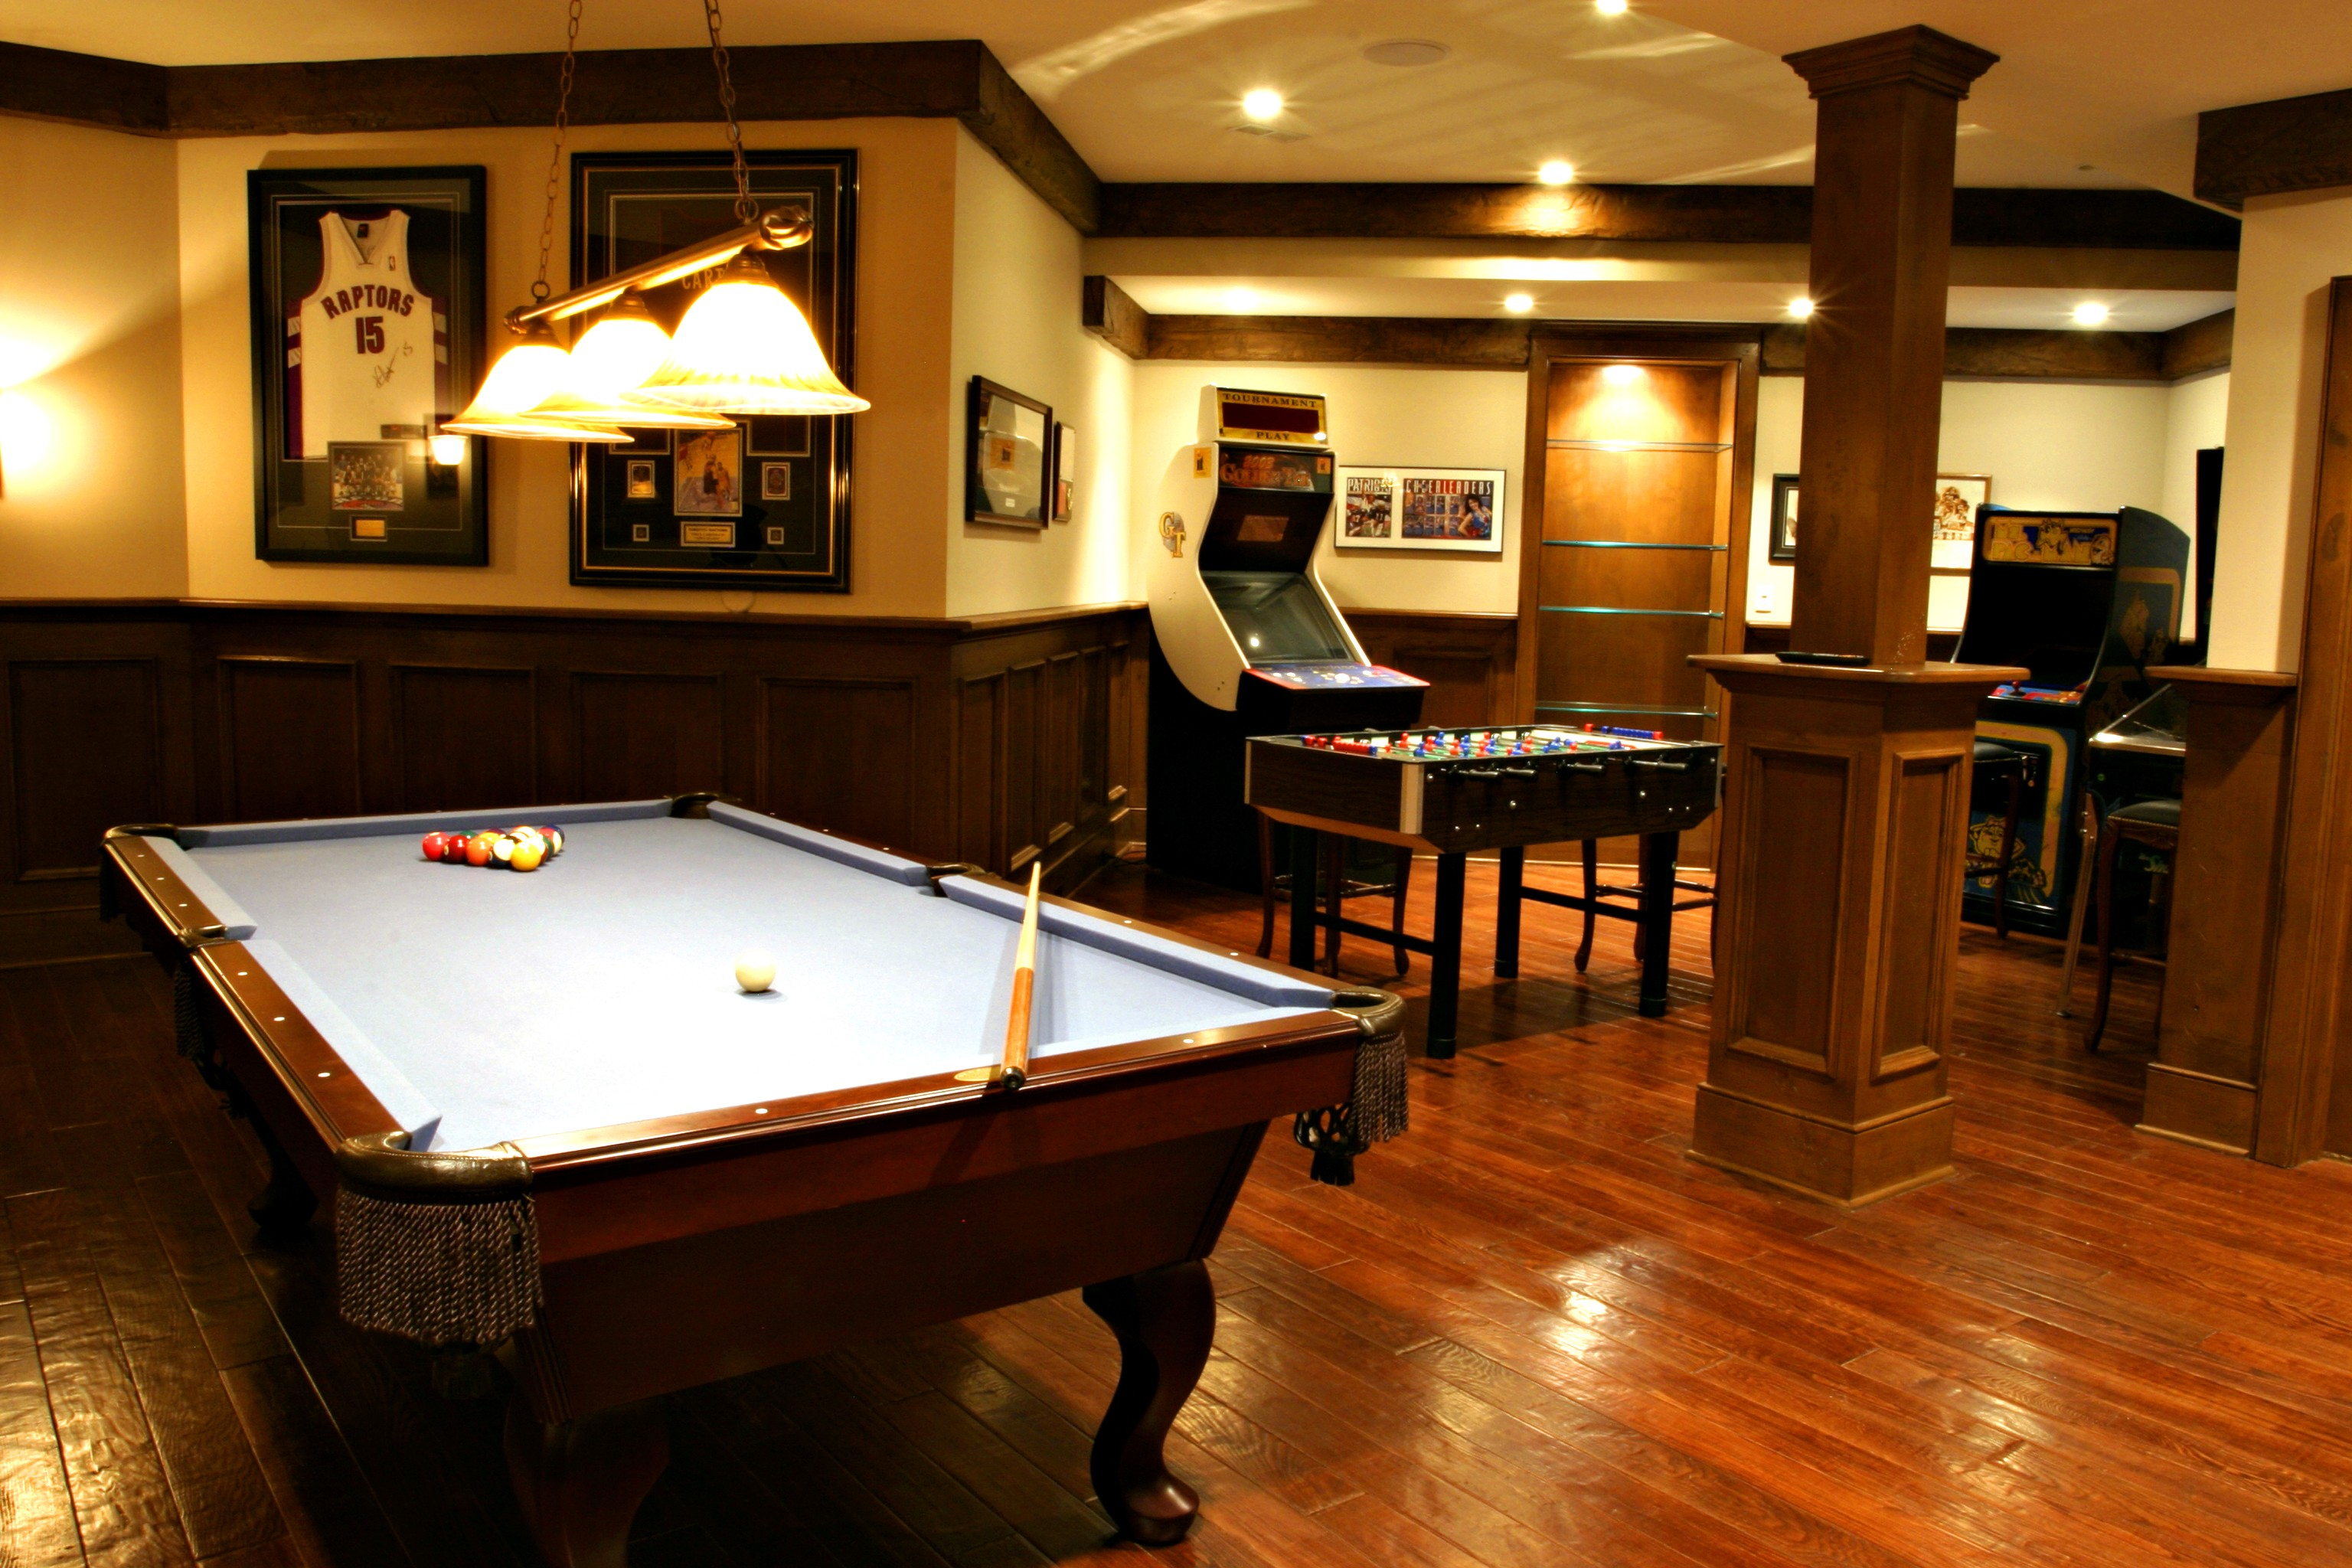 Learn what will fit and what you might want to include. 8 Rec Rooms To Inspire Your Next Game Night | HuffPost